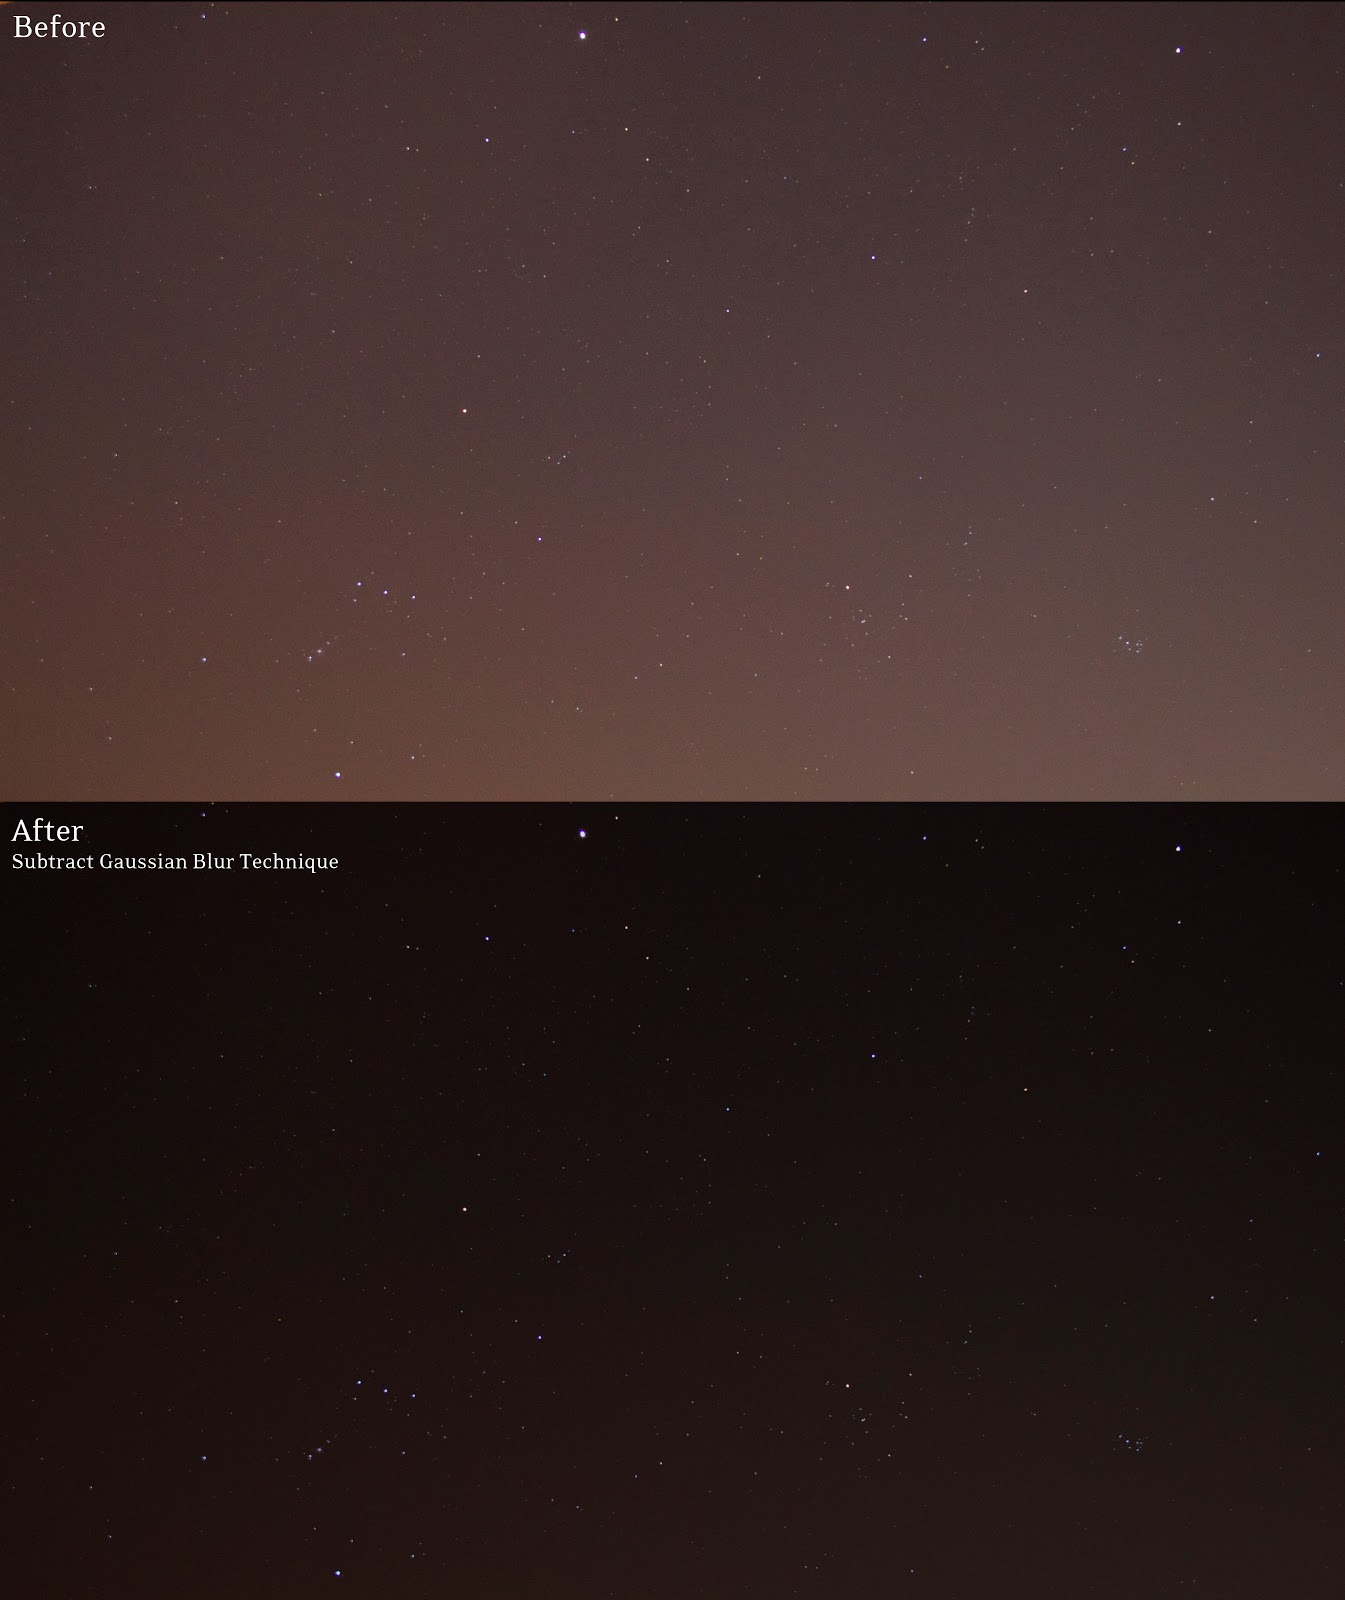 Remove Light Pollution from Star Photos